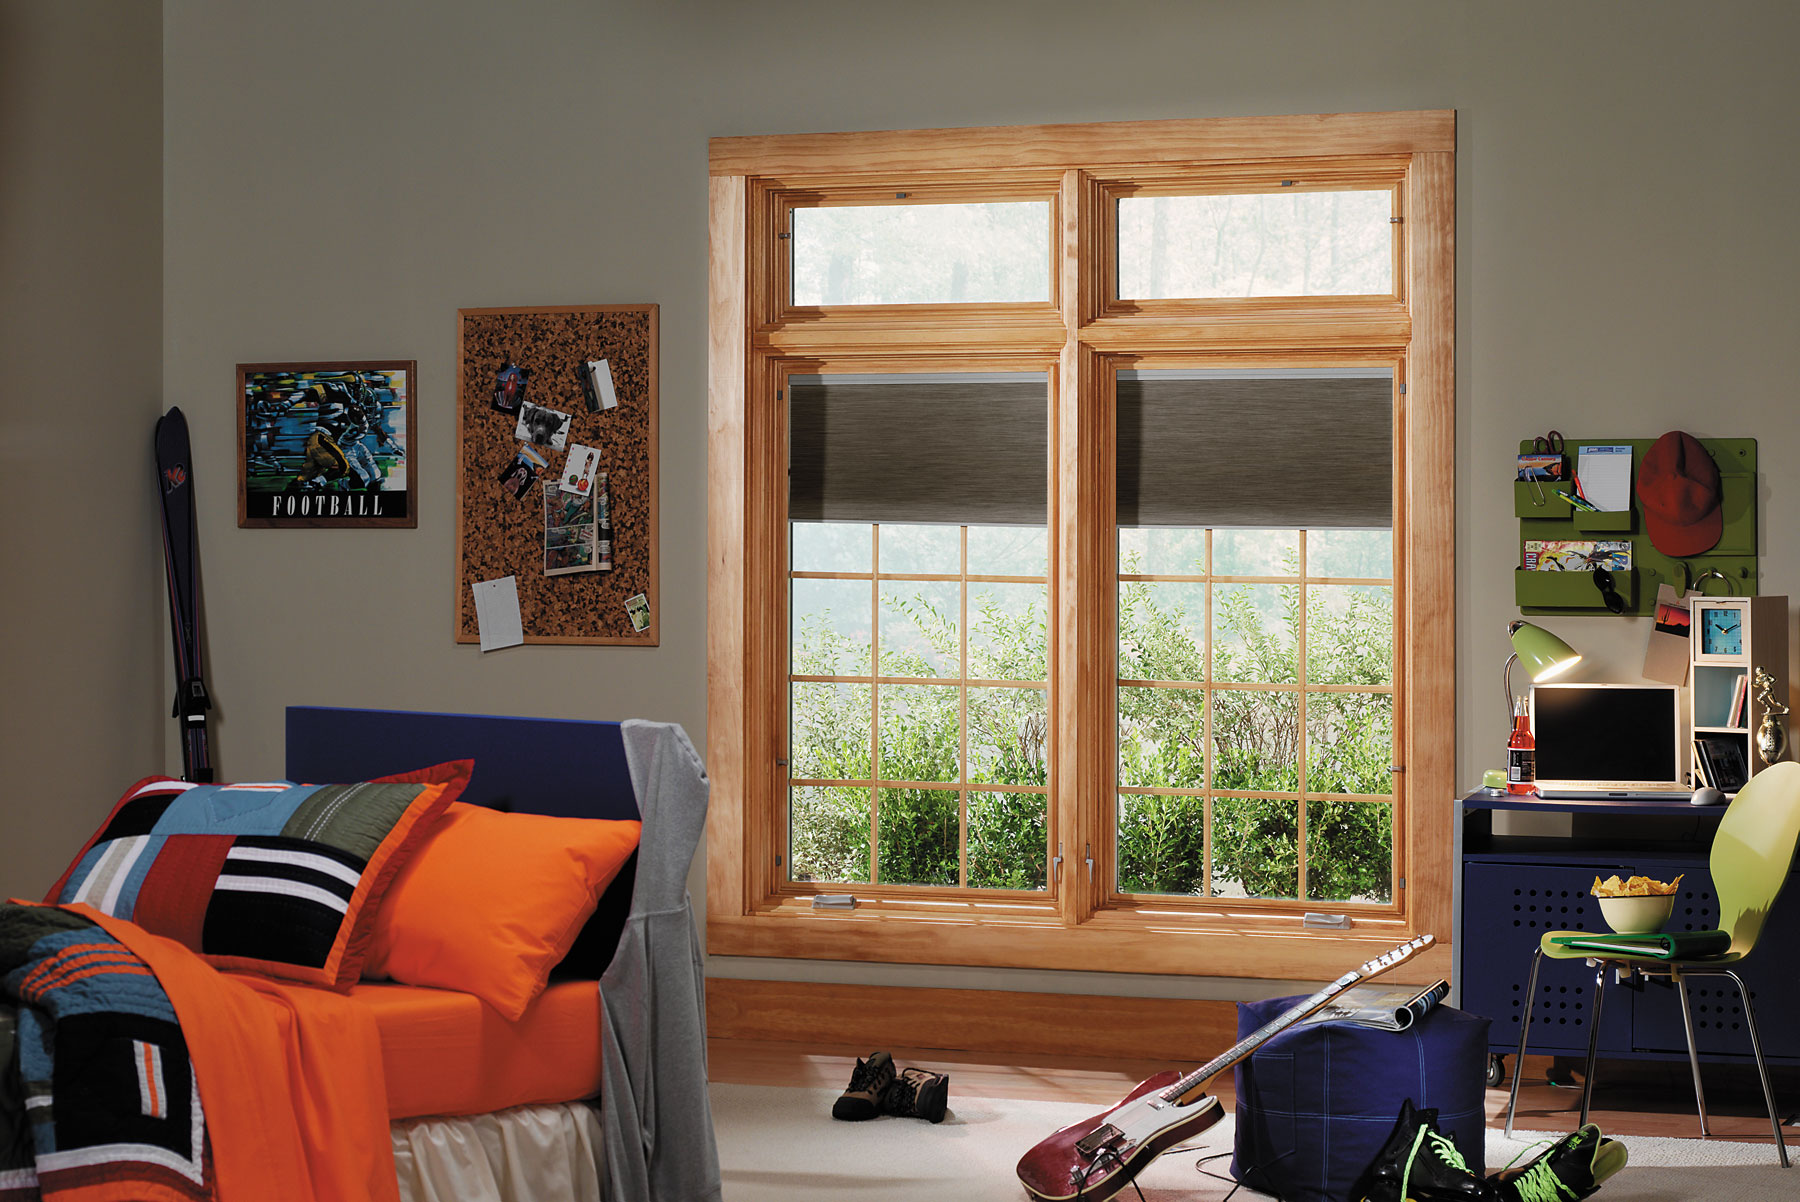 moccasin pella windows matched with grey wall plus picture and desk for teens bedroom decor ideas